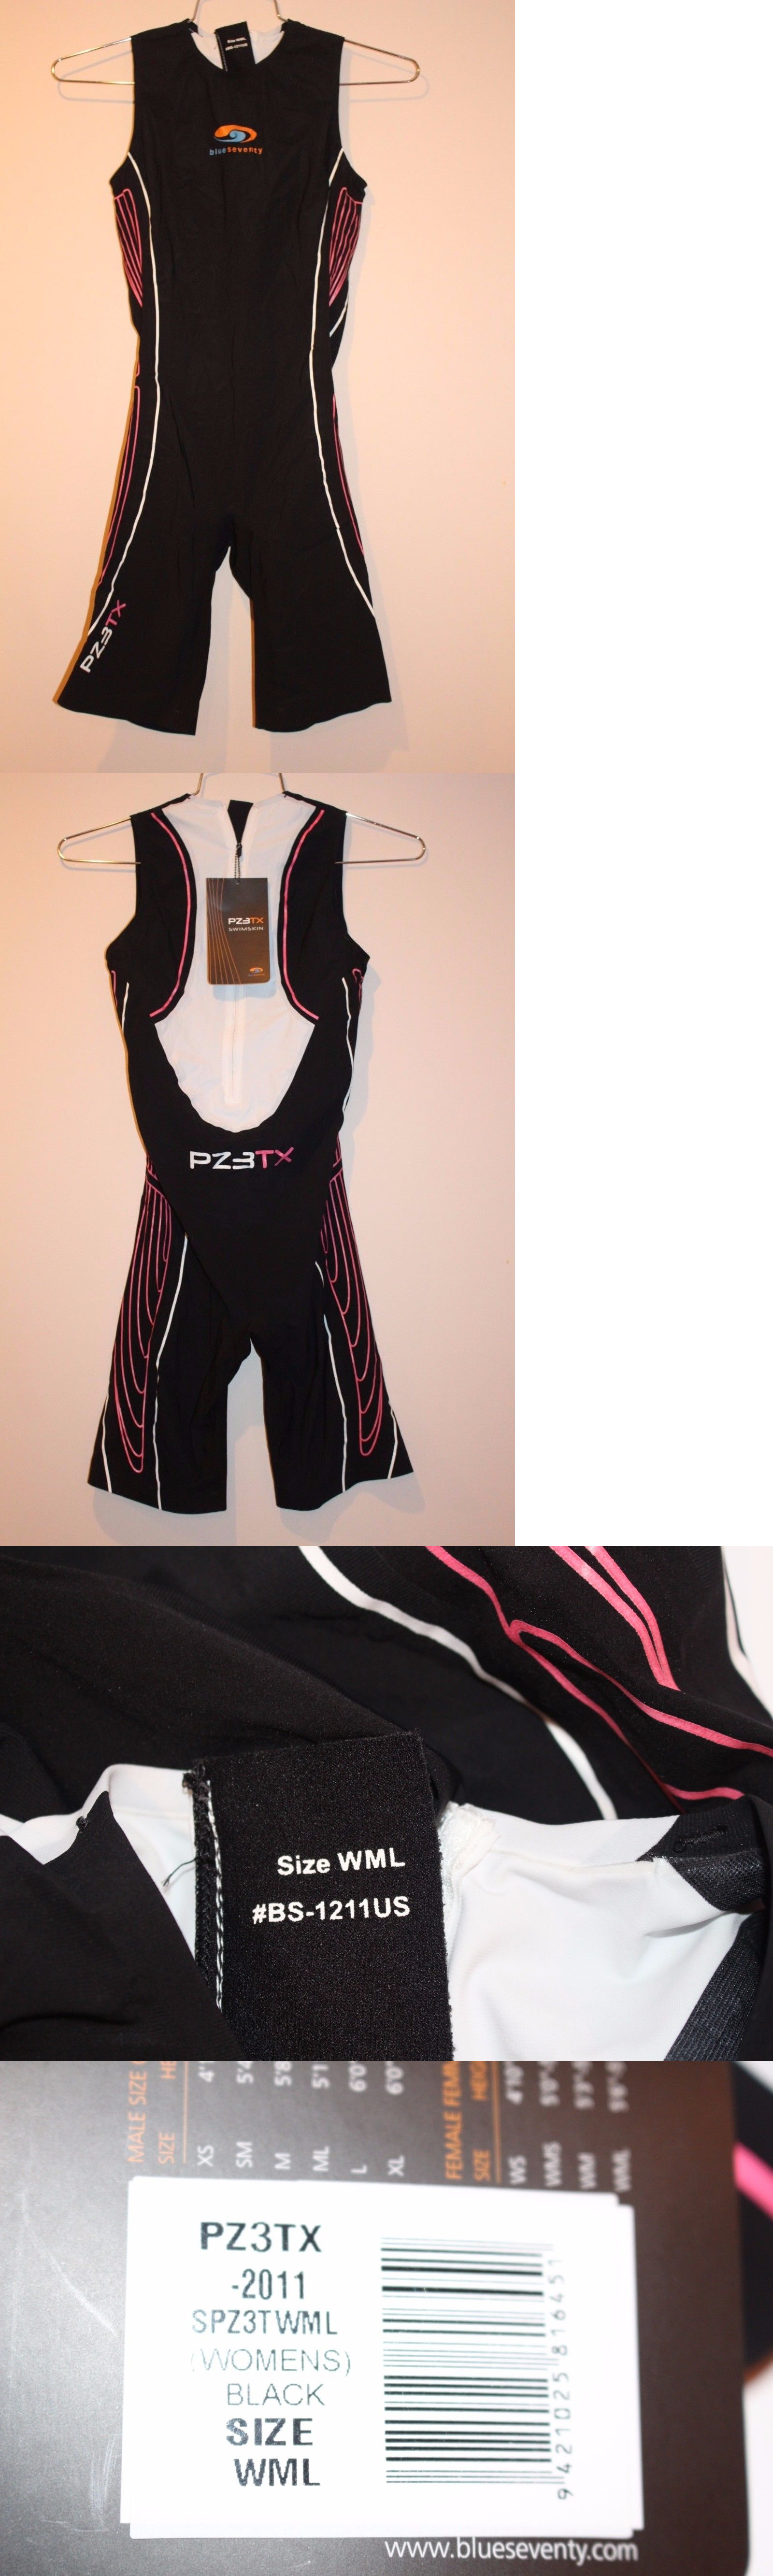 Other Swimming 36269: Blueseventy Pz3tx Swimskin Women S Size Wml Black Pink White Bs-1211Us New -> BUY IT NOW ONLY: $229.99 on eBay!